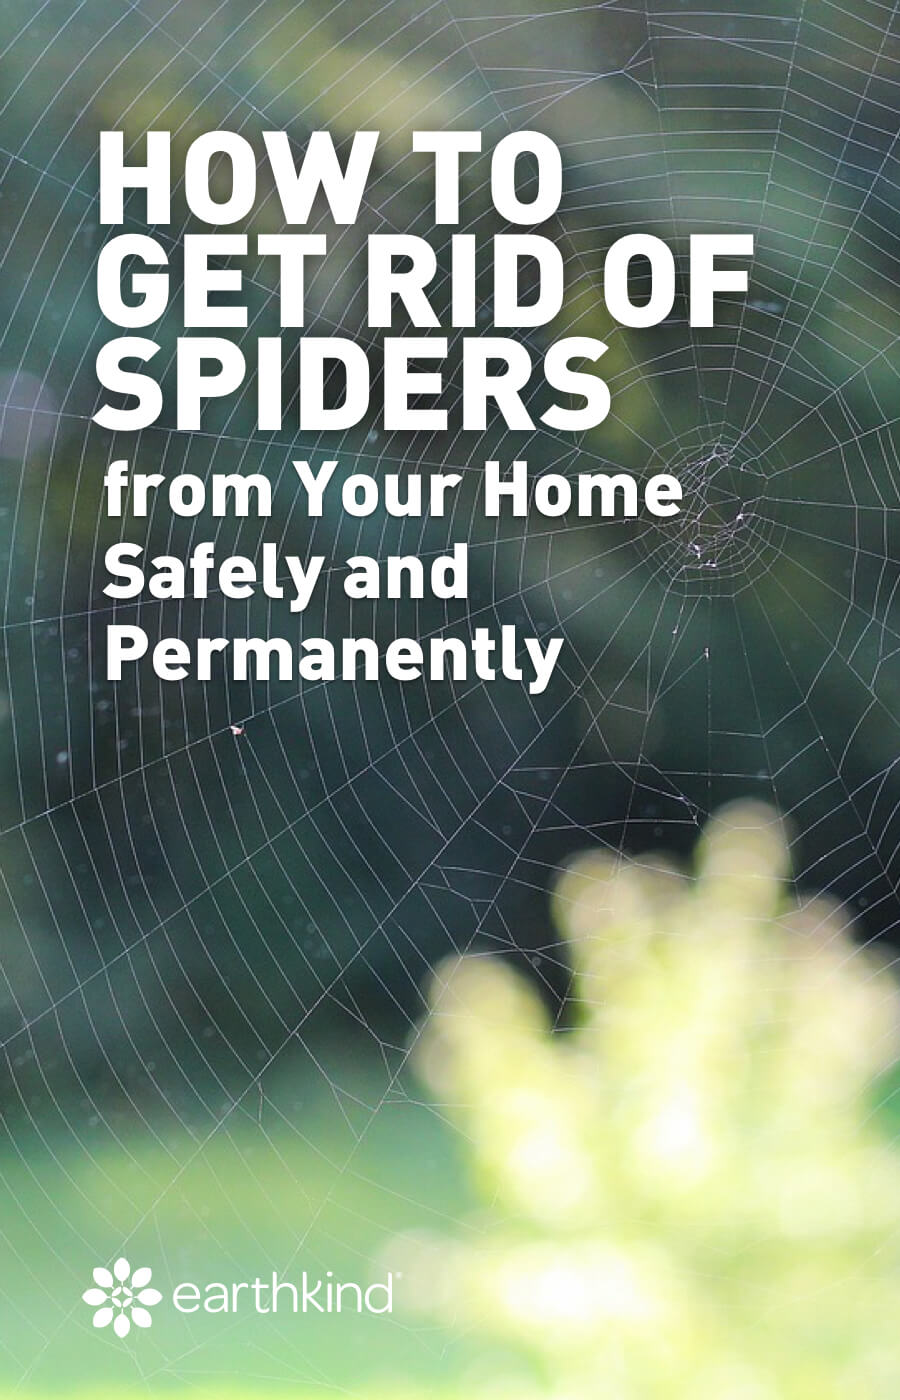 Tips for getting rid of spiders in the house